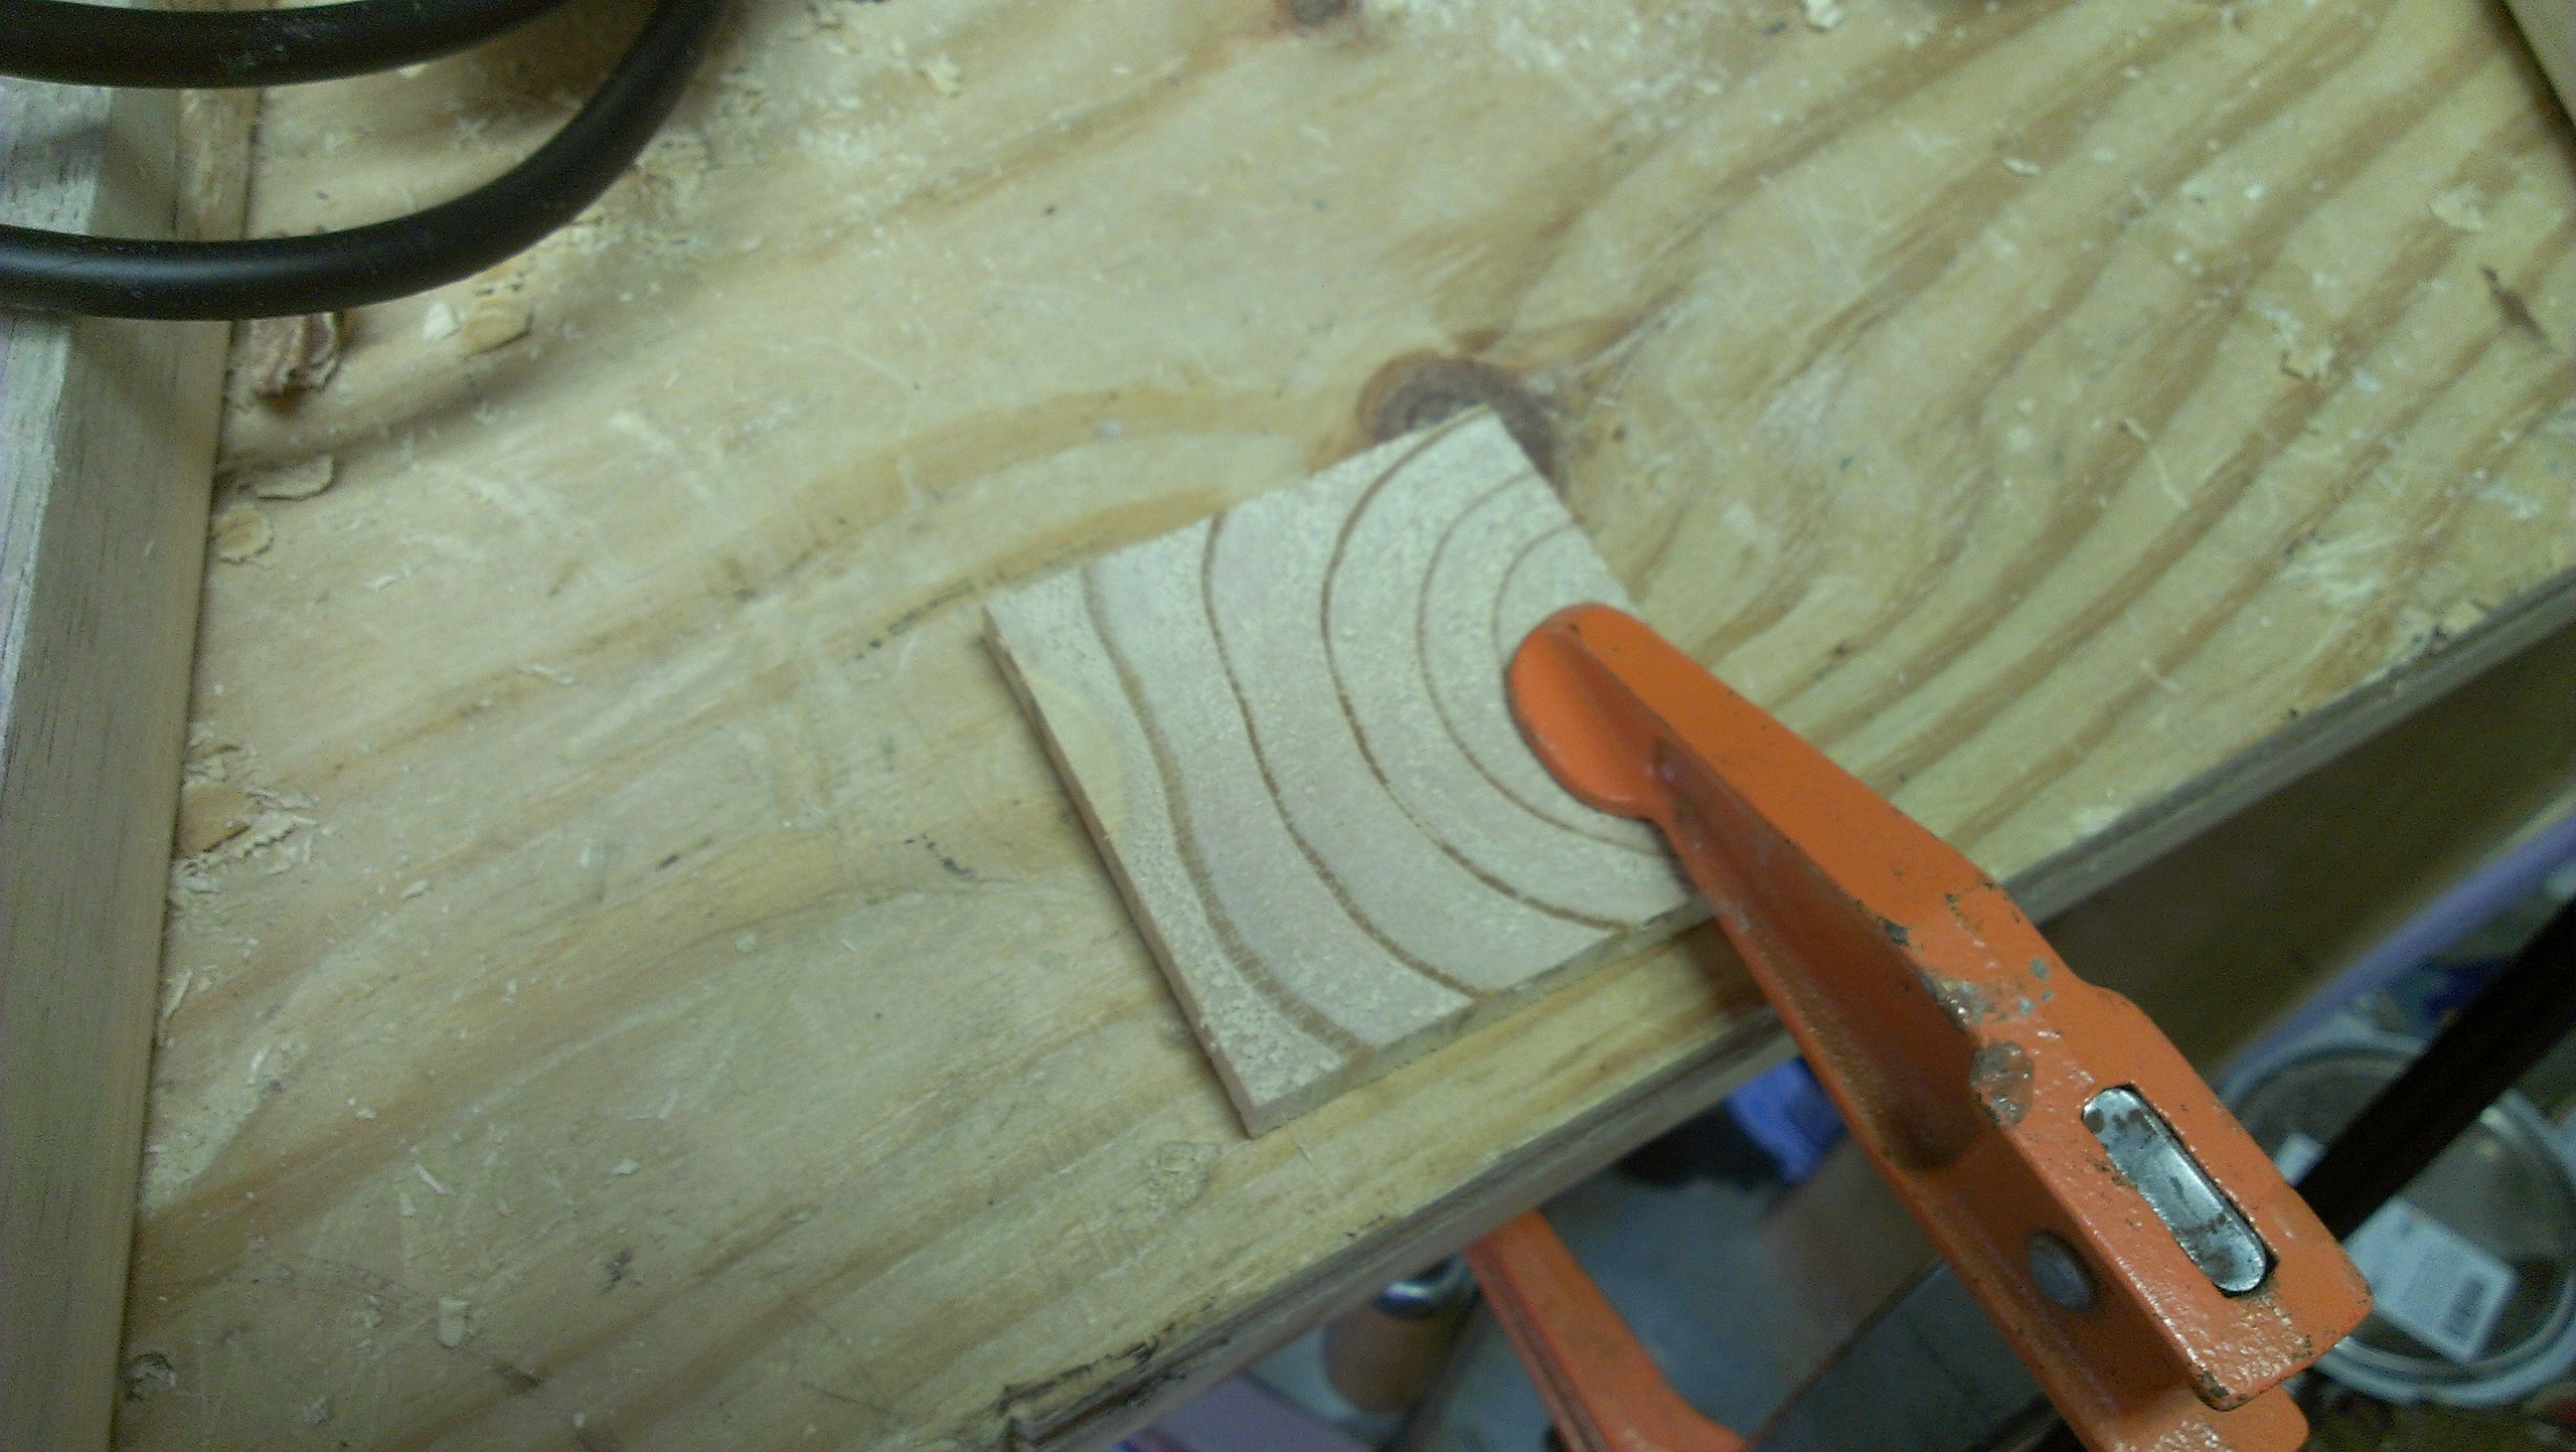 Picture of Grain Pattern Coaster. I Made It at Techshop